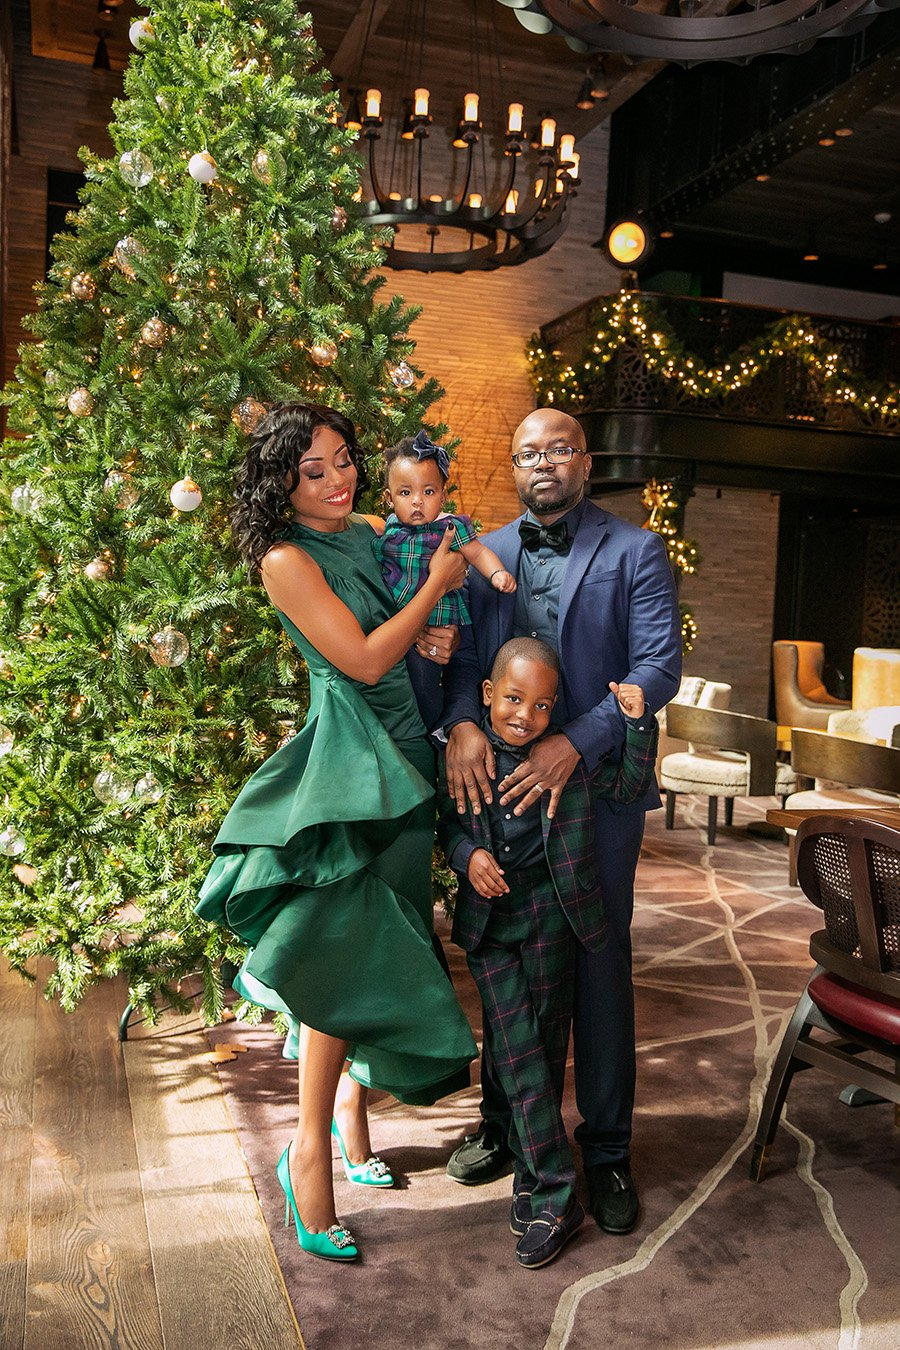 Stella Adewunmi shares her Christmas holiday with family